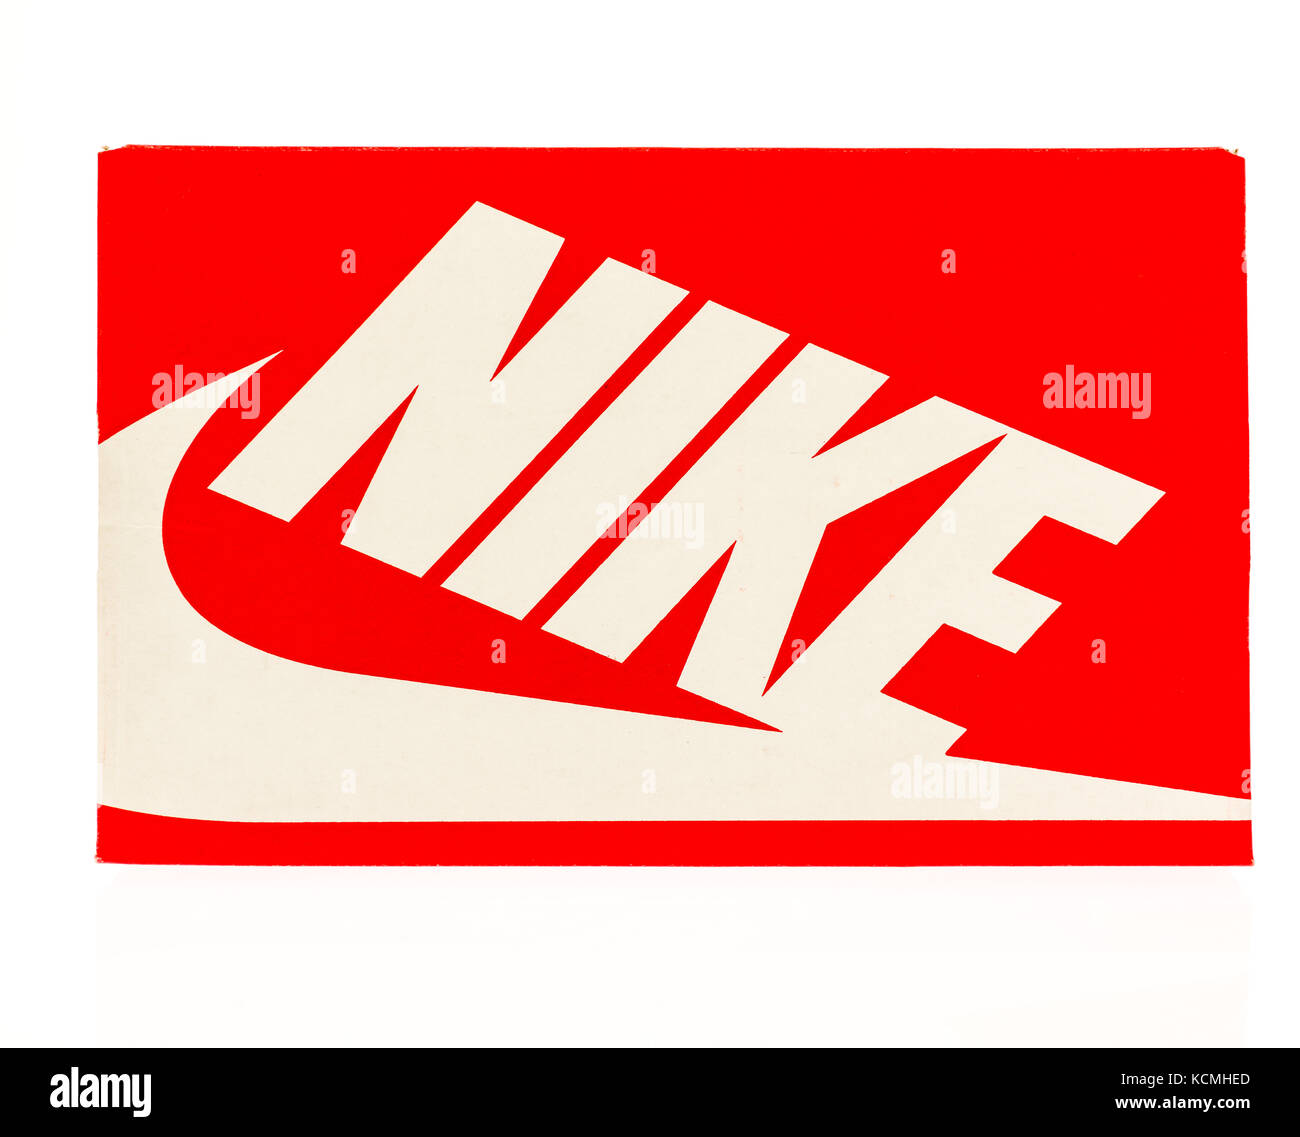 495e32d35342 Nike Logo Stock Photos   Nike Logo Stock Images - Alamy